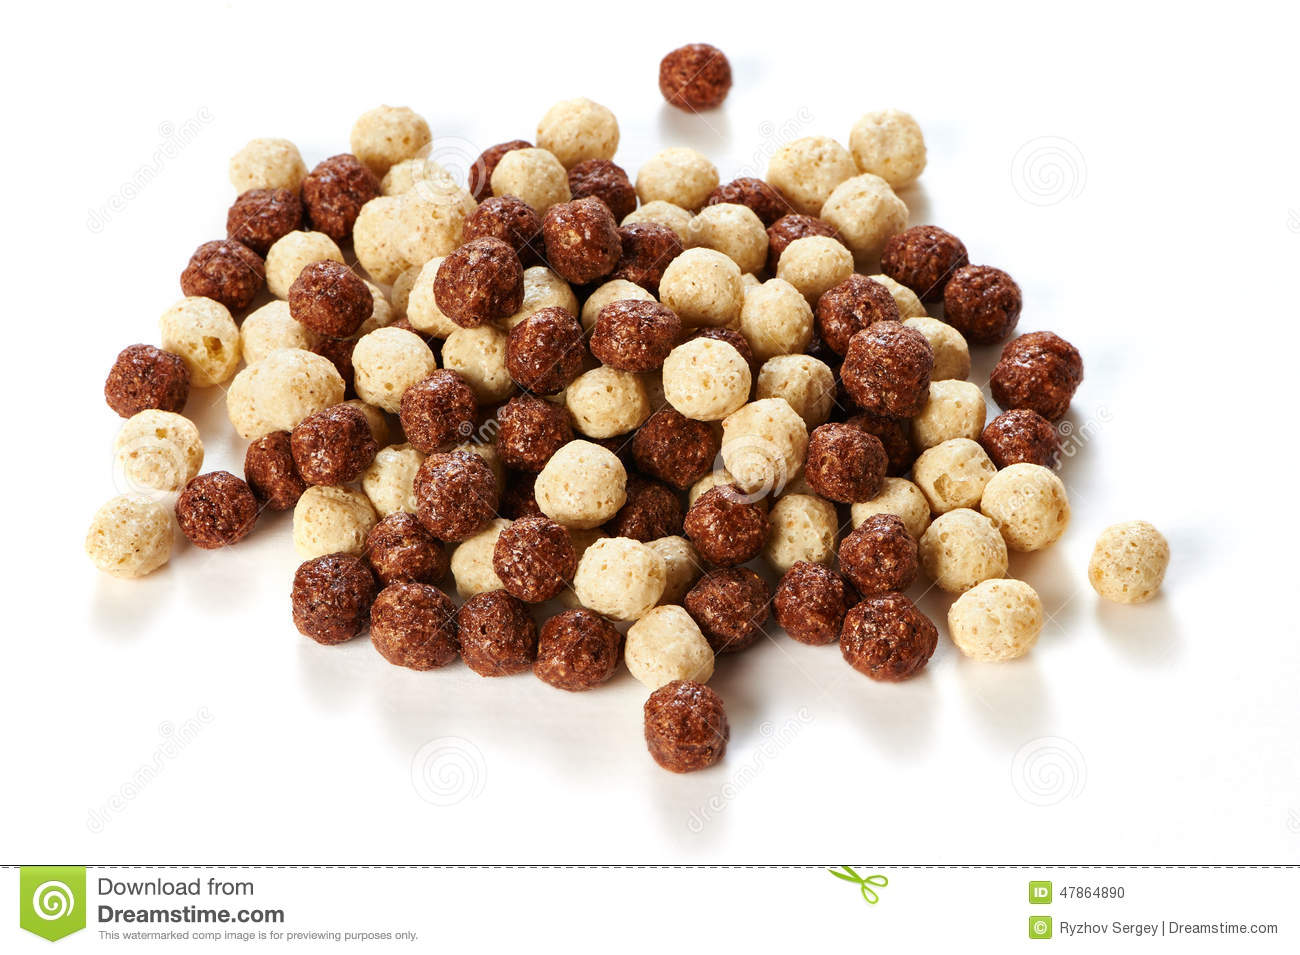 Crunchy Chocolate Balls On White Background Stock Photo.